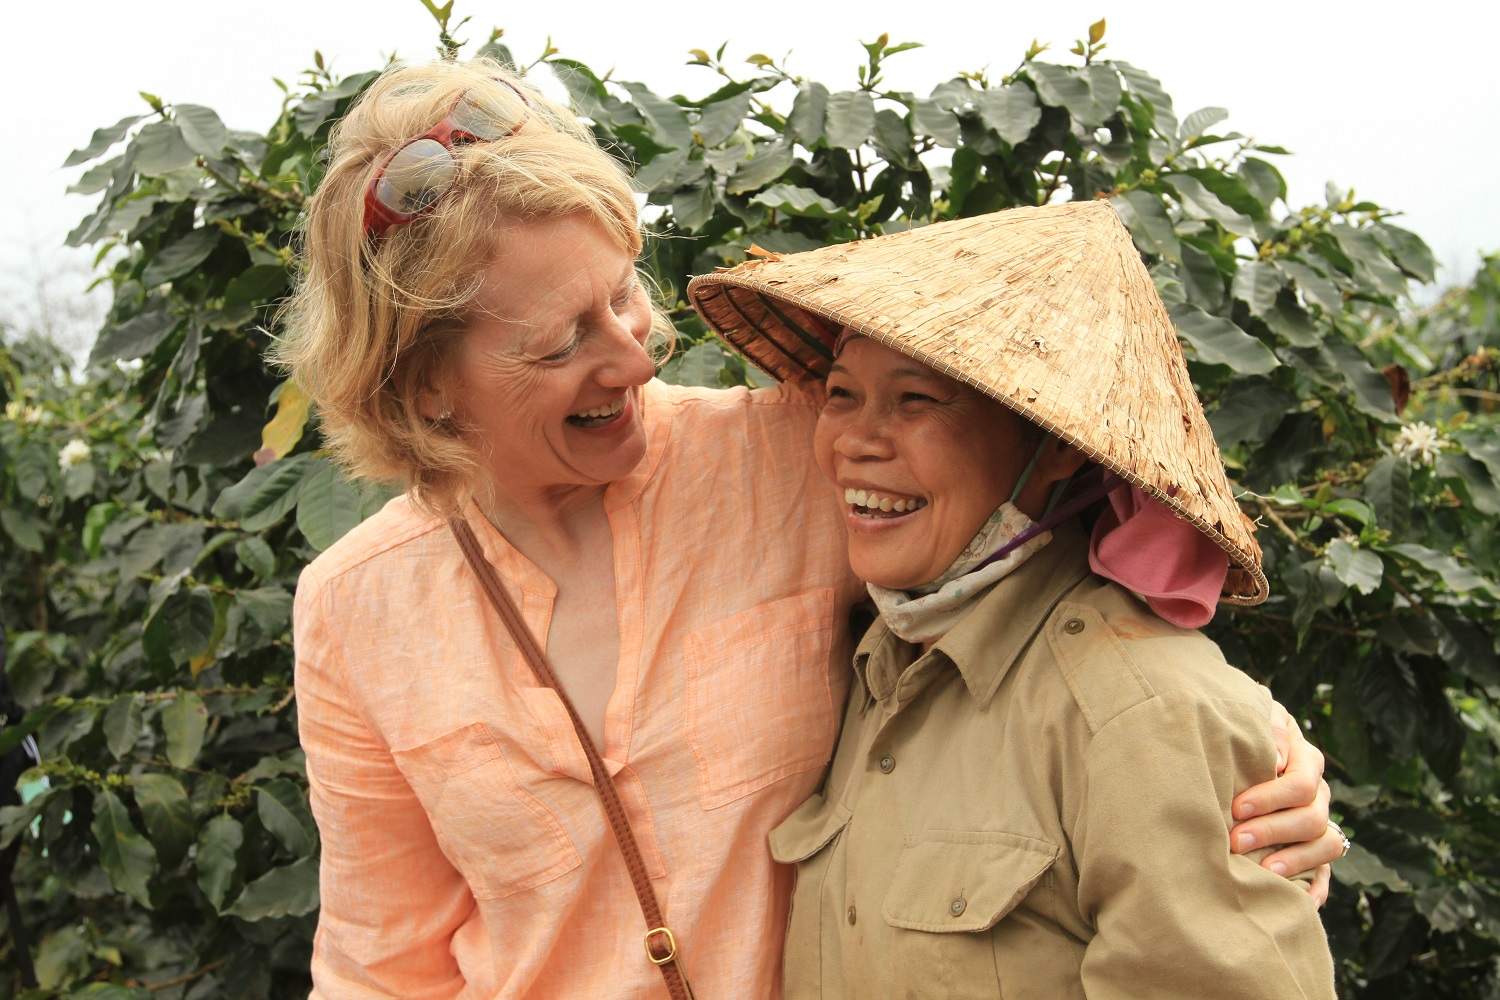 Explore Vietnam and See Our Work